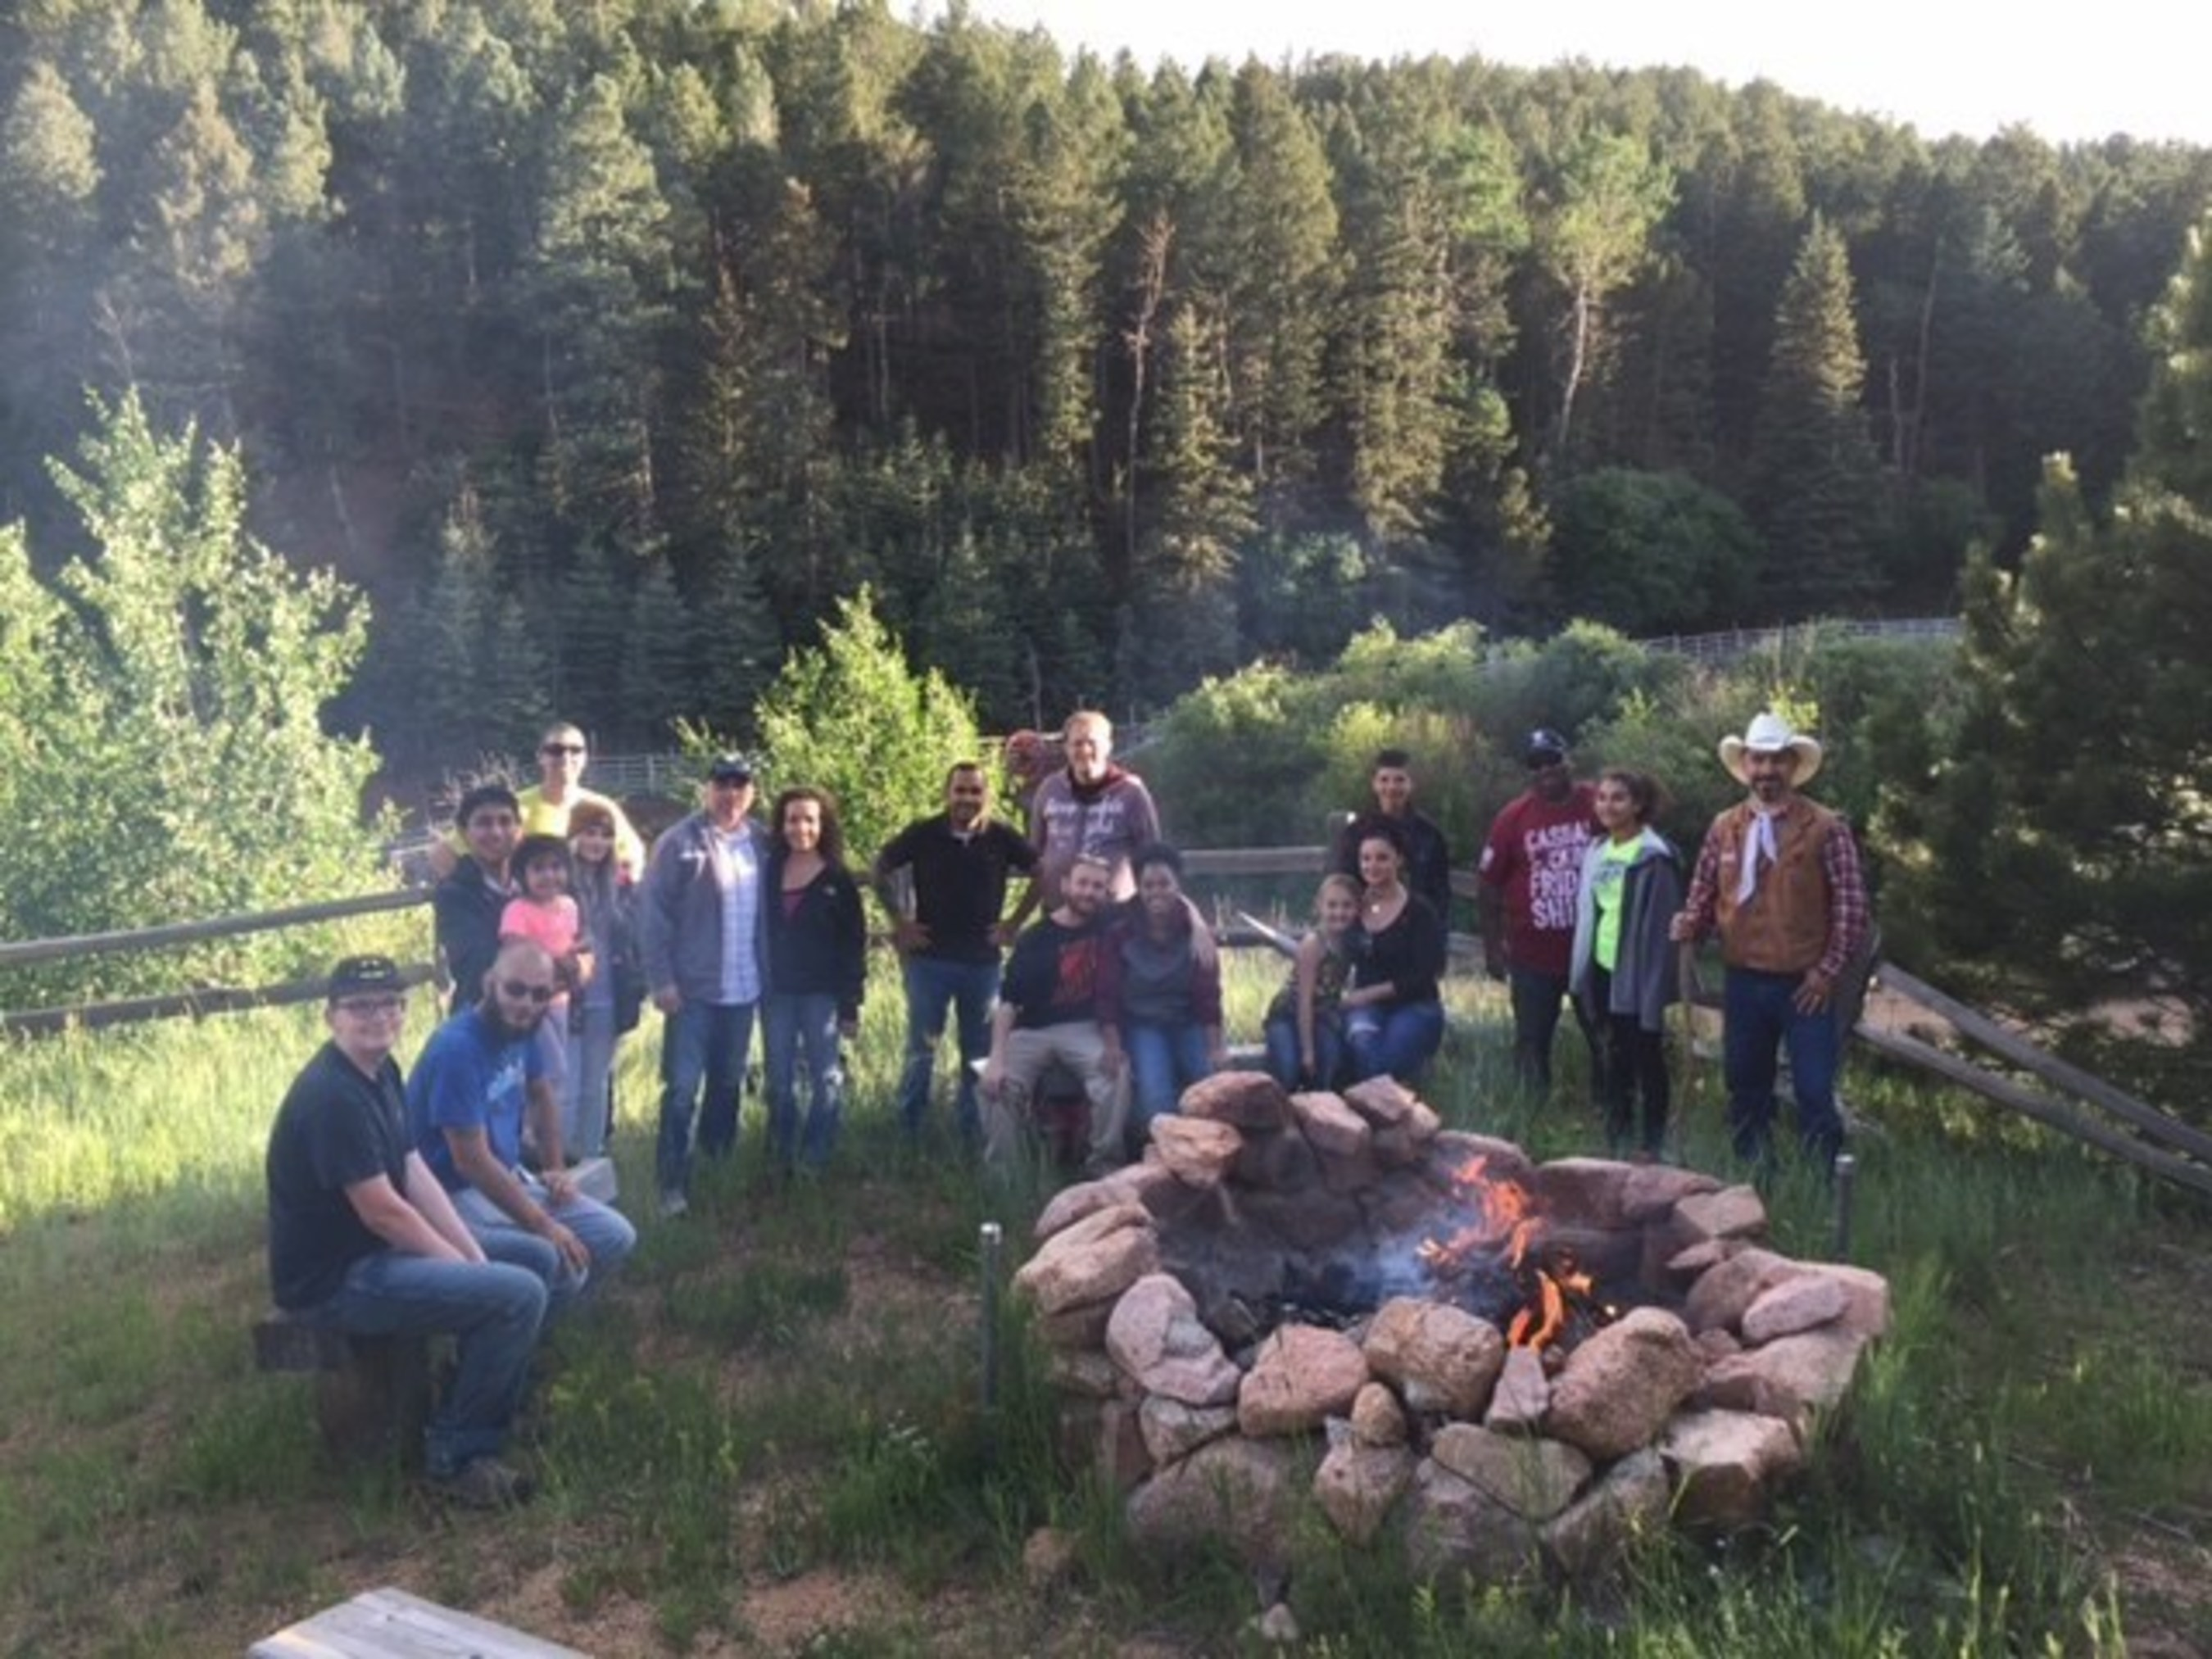 Warriors and family members enjoyed a Jeep ride through Cheyenne Mountain, which included a campfire and s'mores at a mountain ranch.